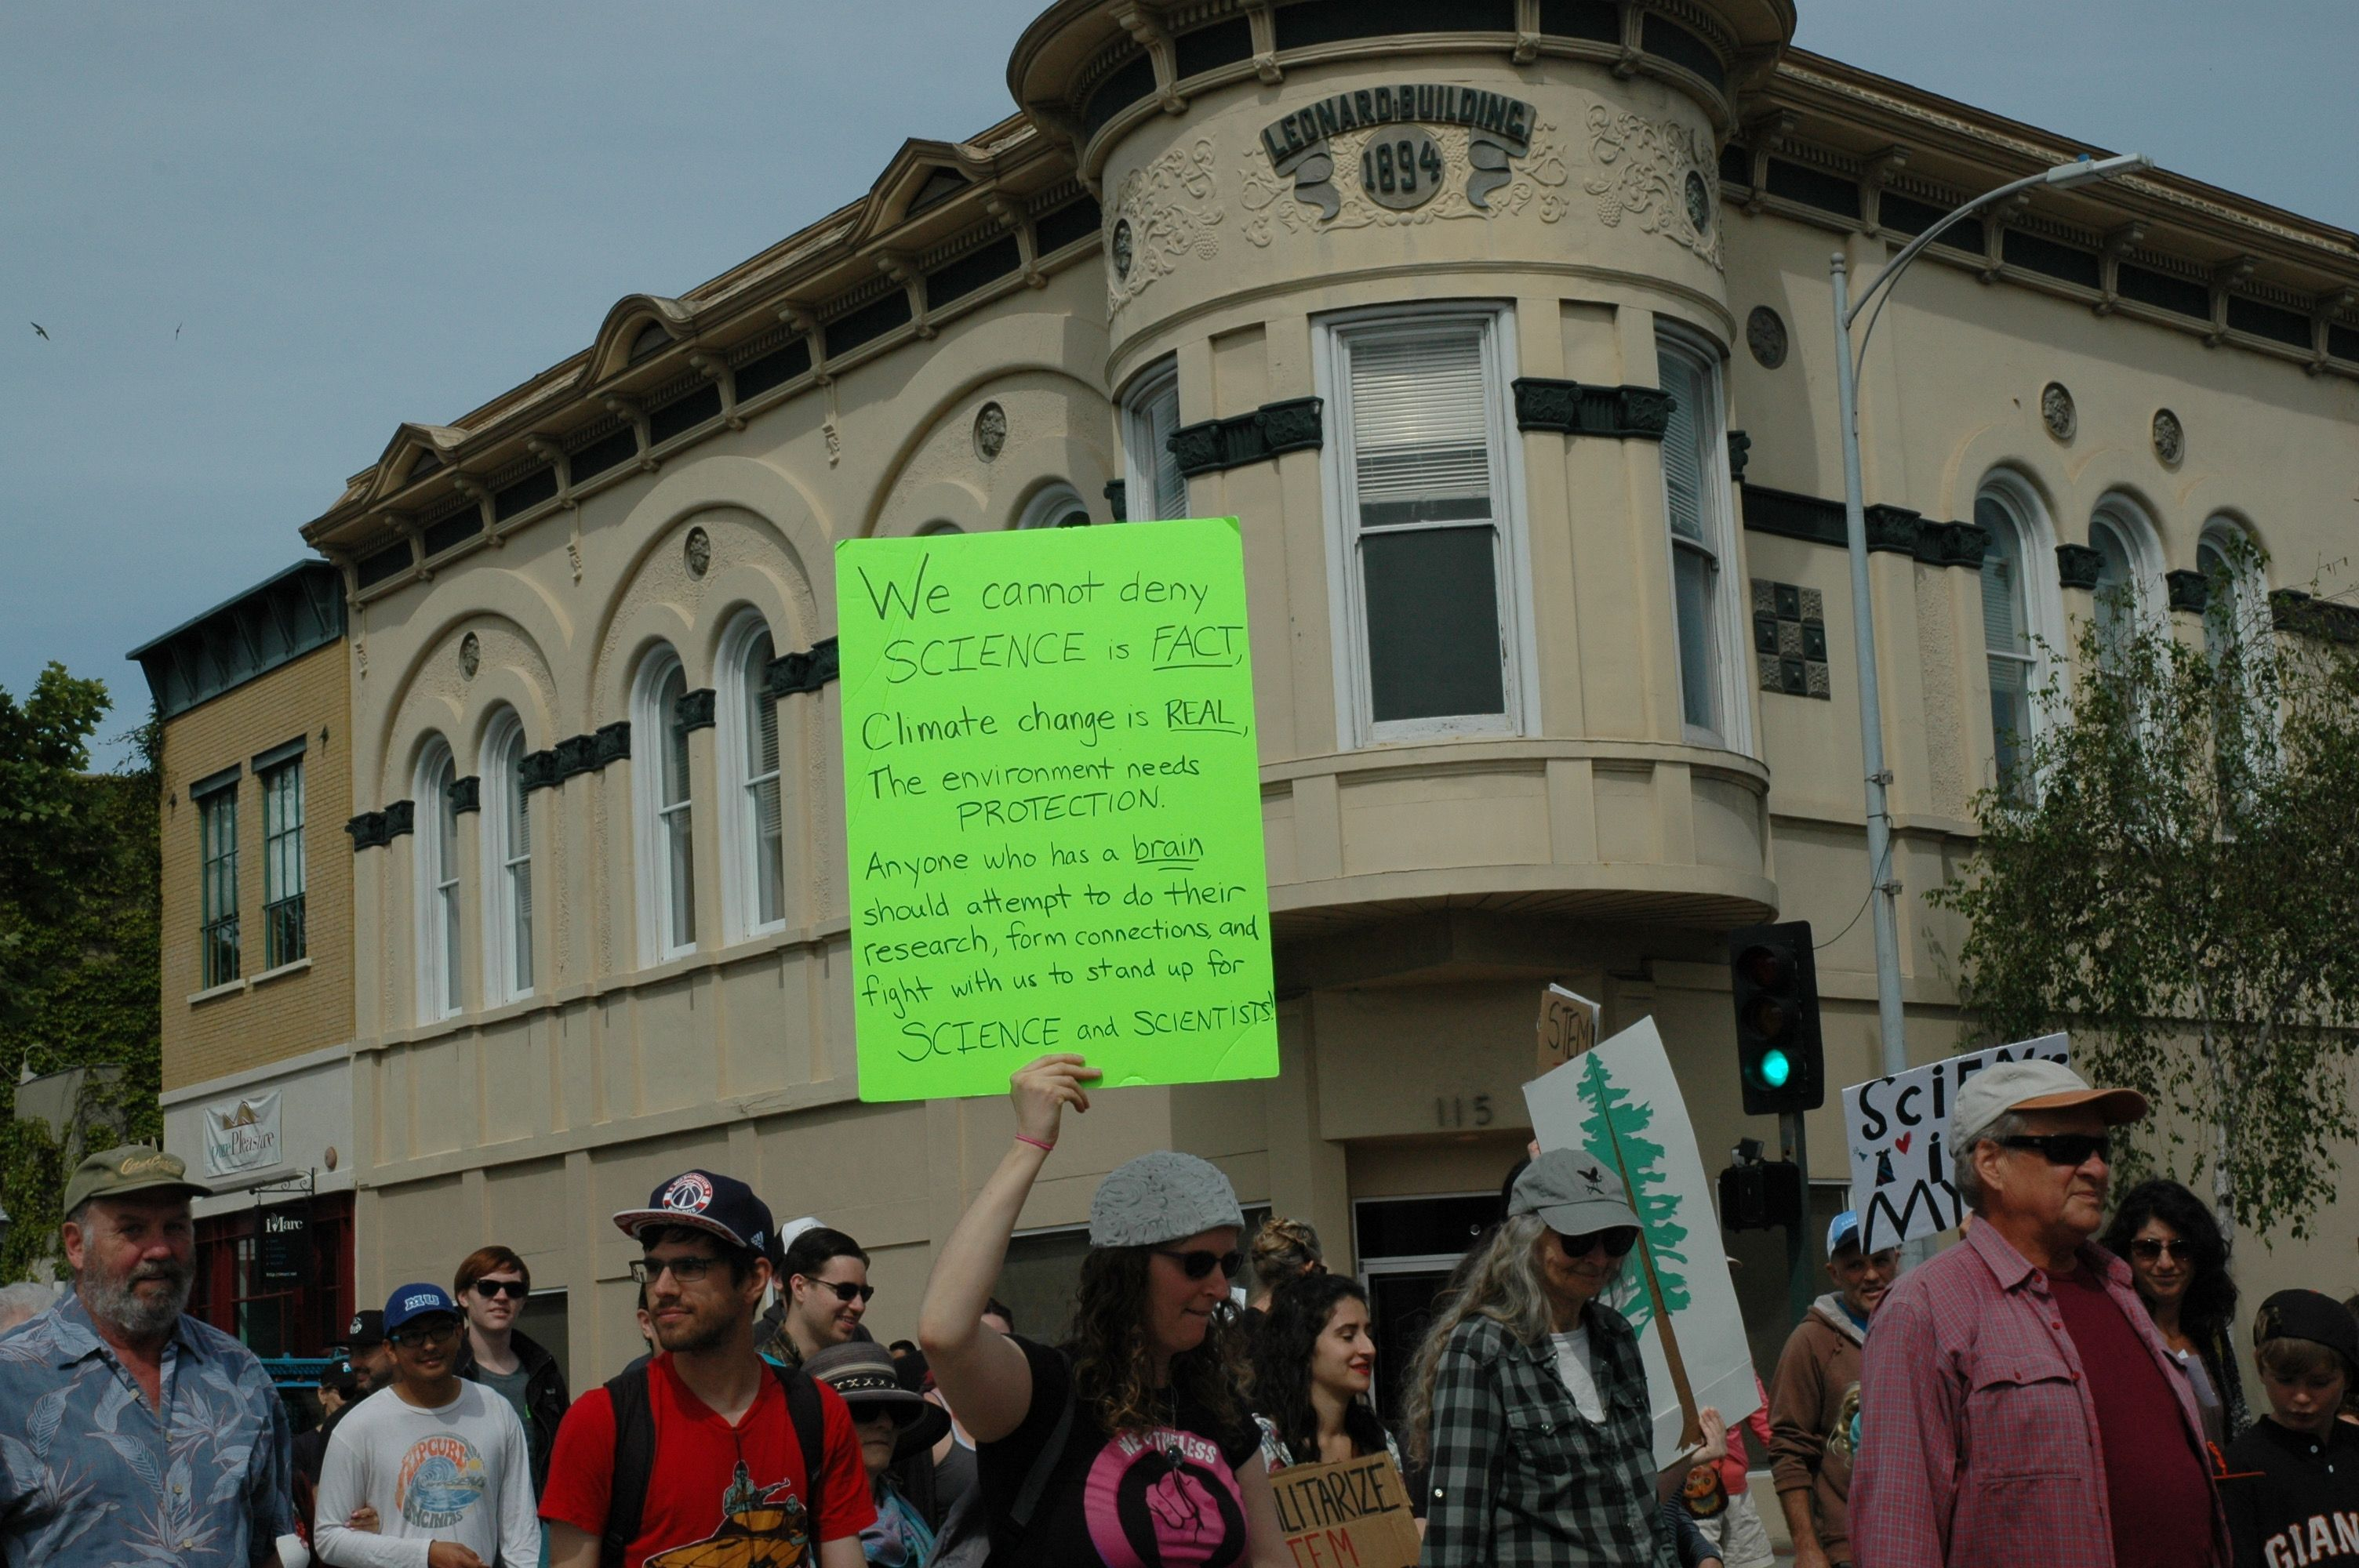 Pin By Santa Cruz Indivisible On March For Science 4 22 2017 March For Science Climate Change Climates